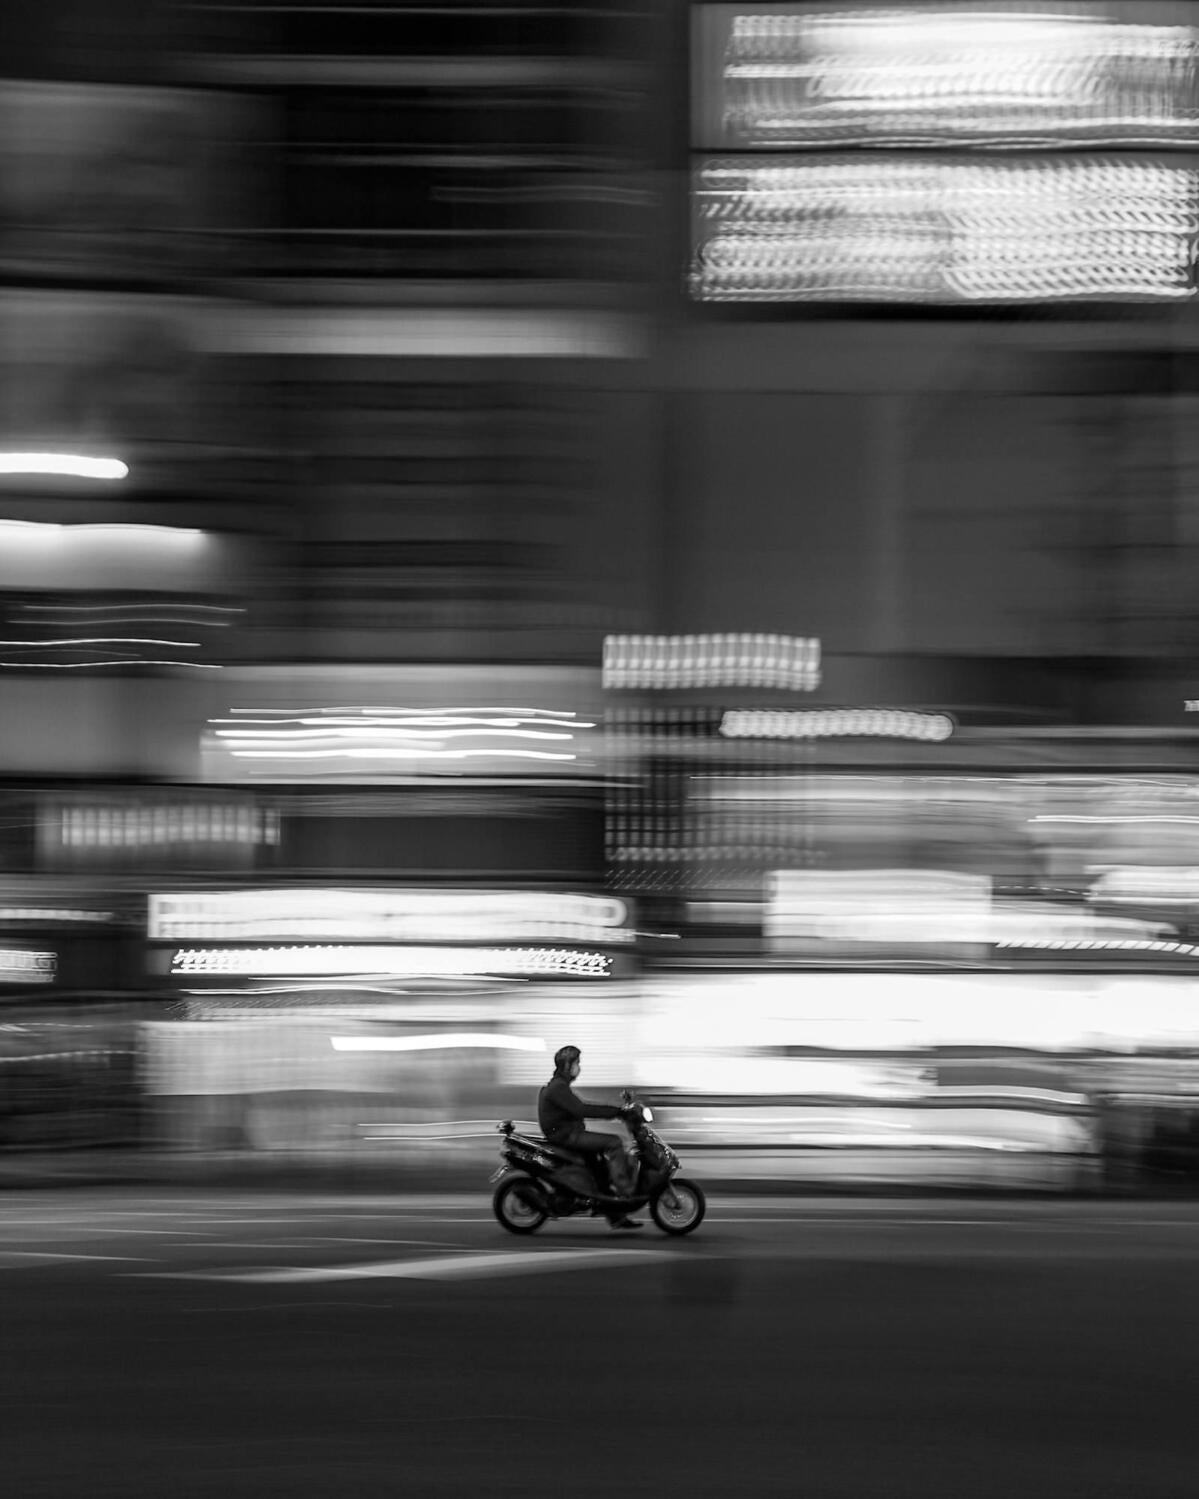 Weekly Roundup: A Week Of Black White Photography, #CreatorConversations More